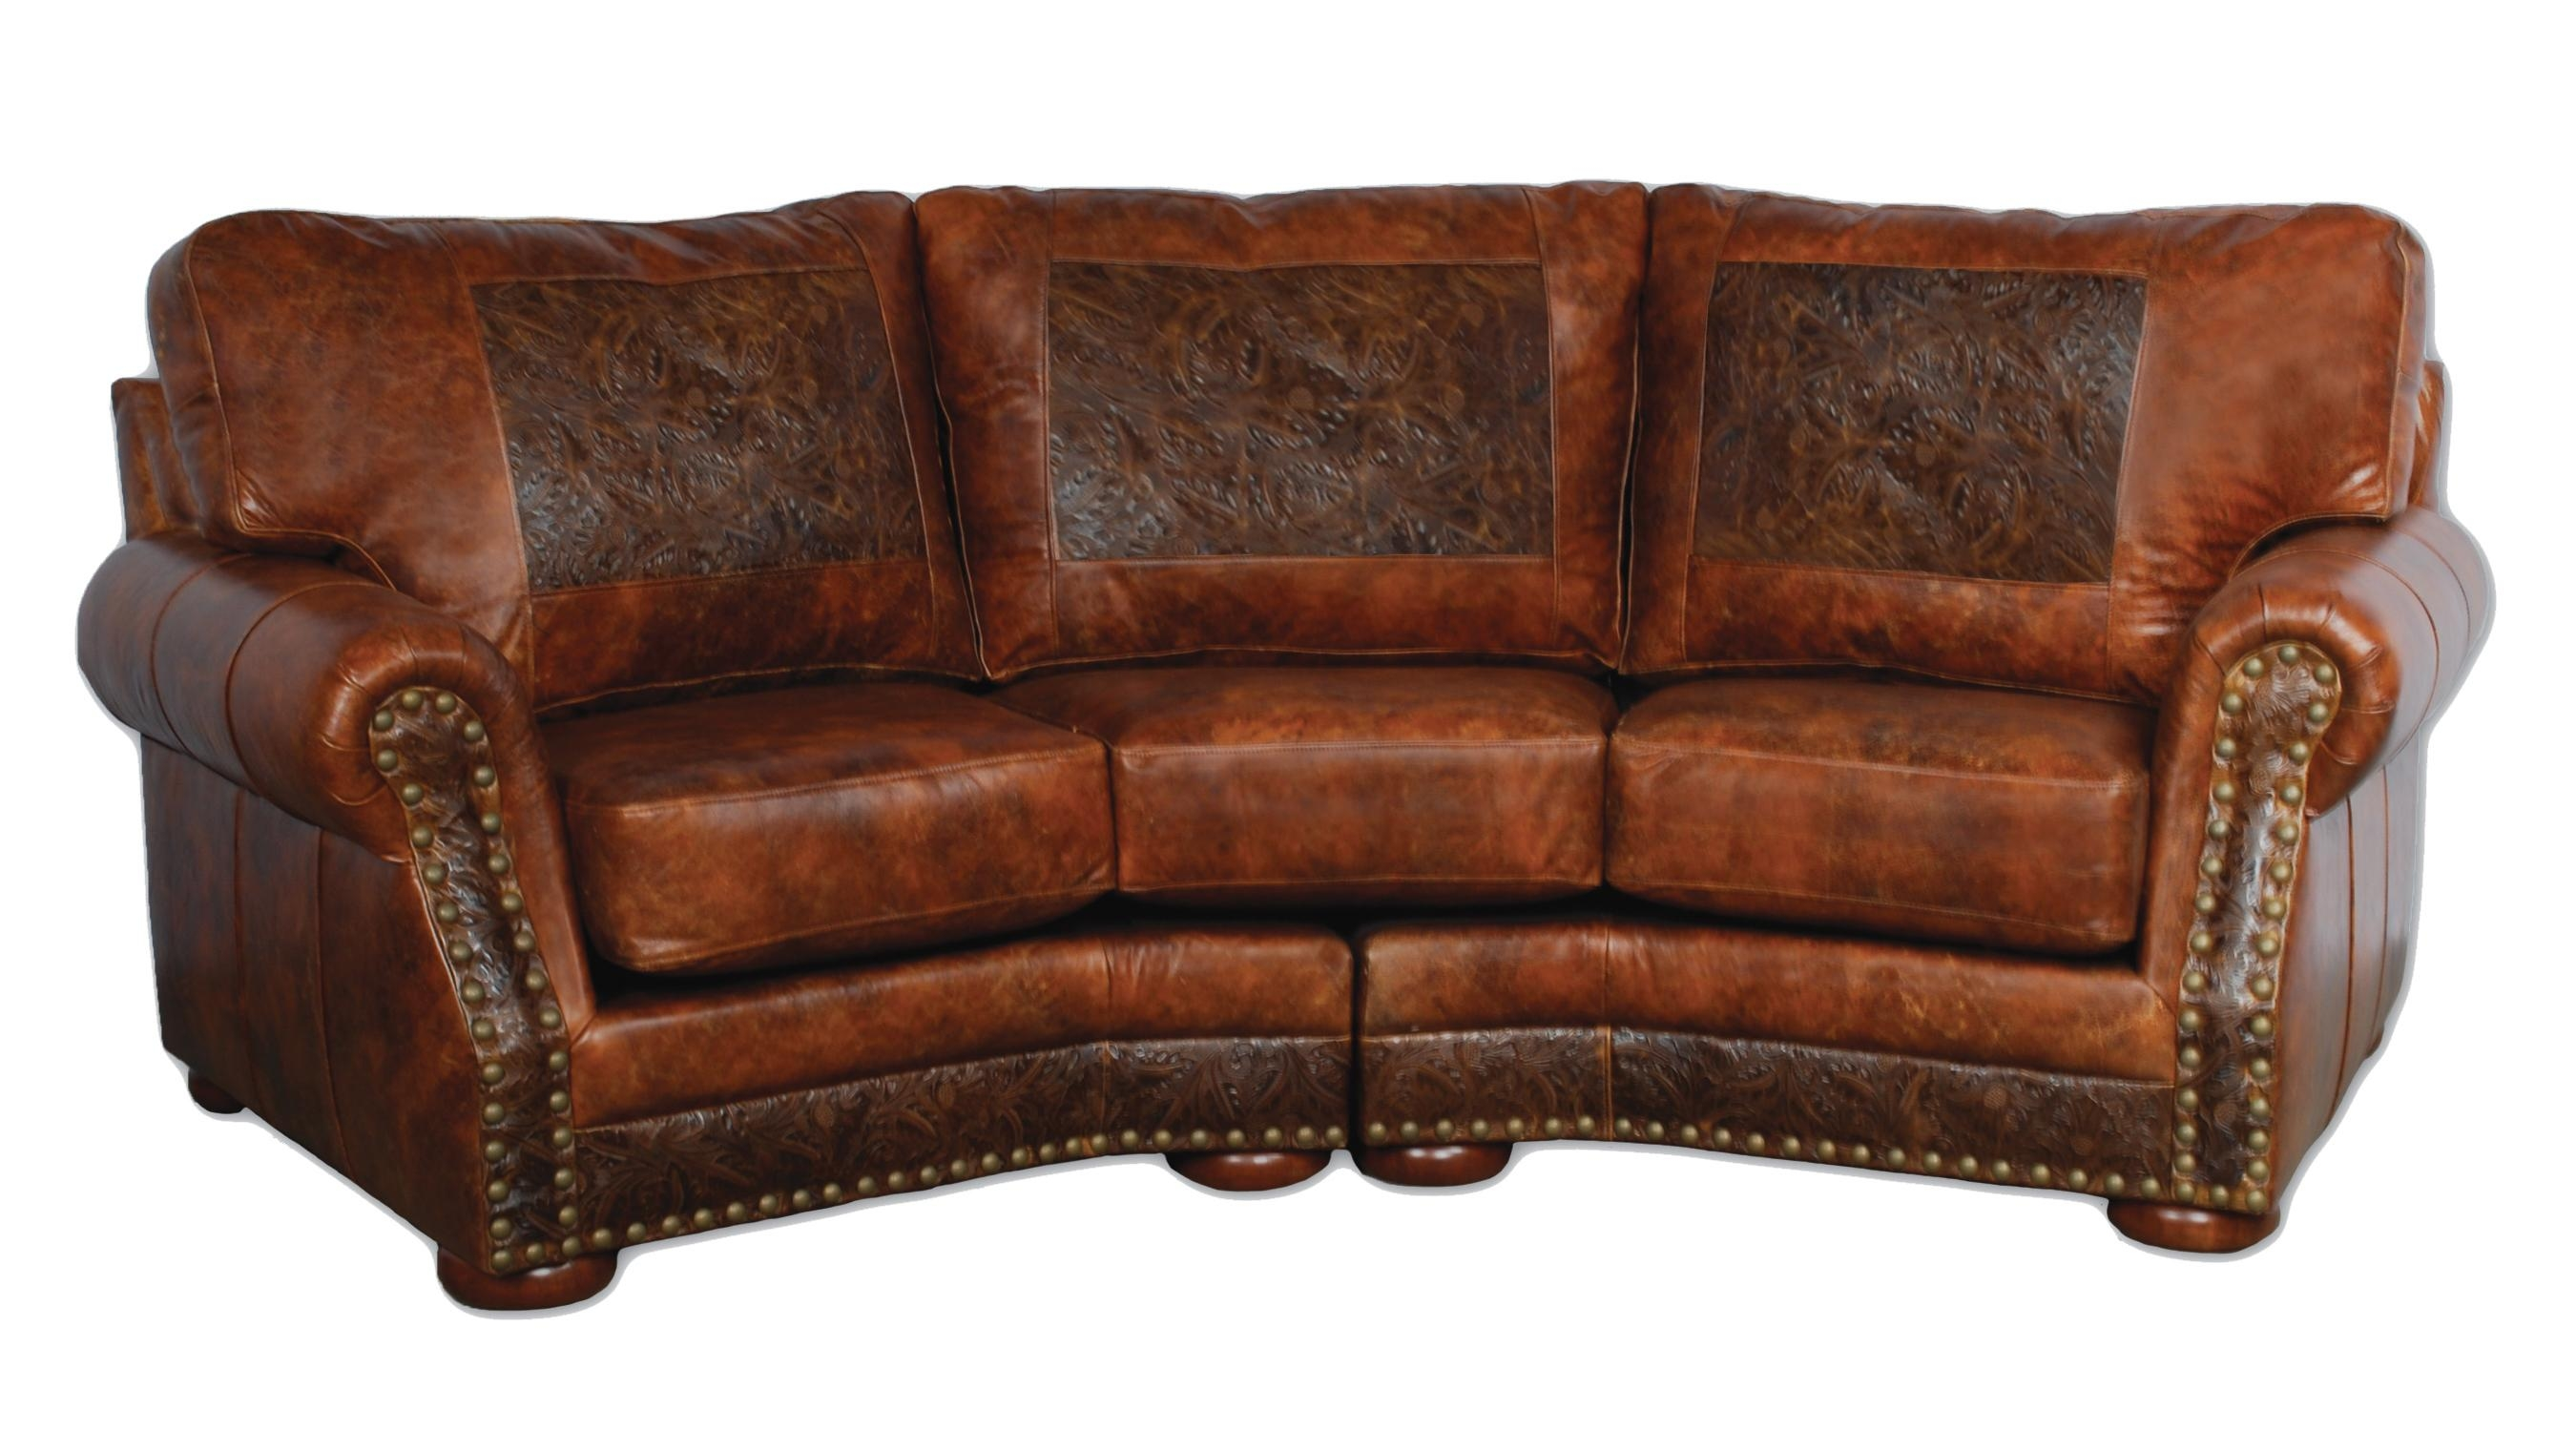 Best Distressed Leather Sofa 28 For Contemporary Sofa Inspiration with Distressed Leather Sofa